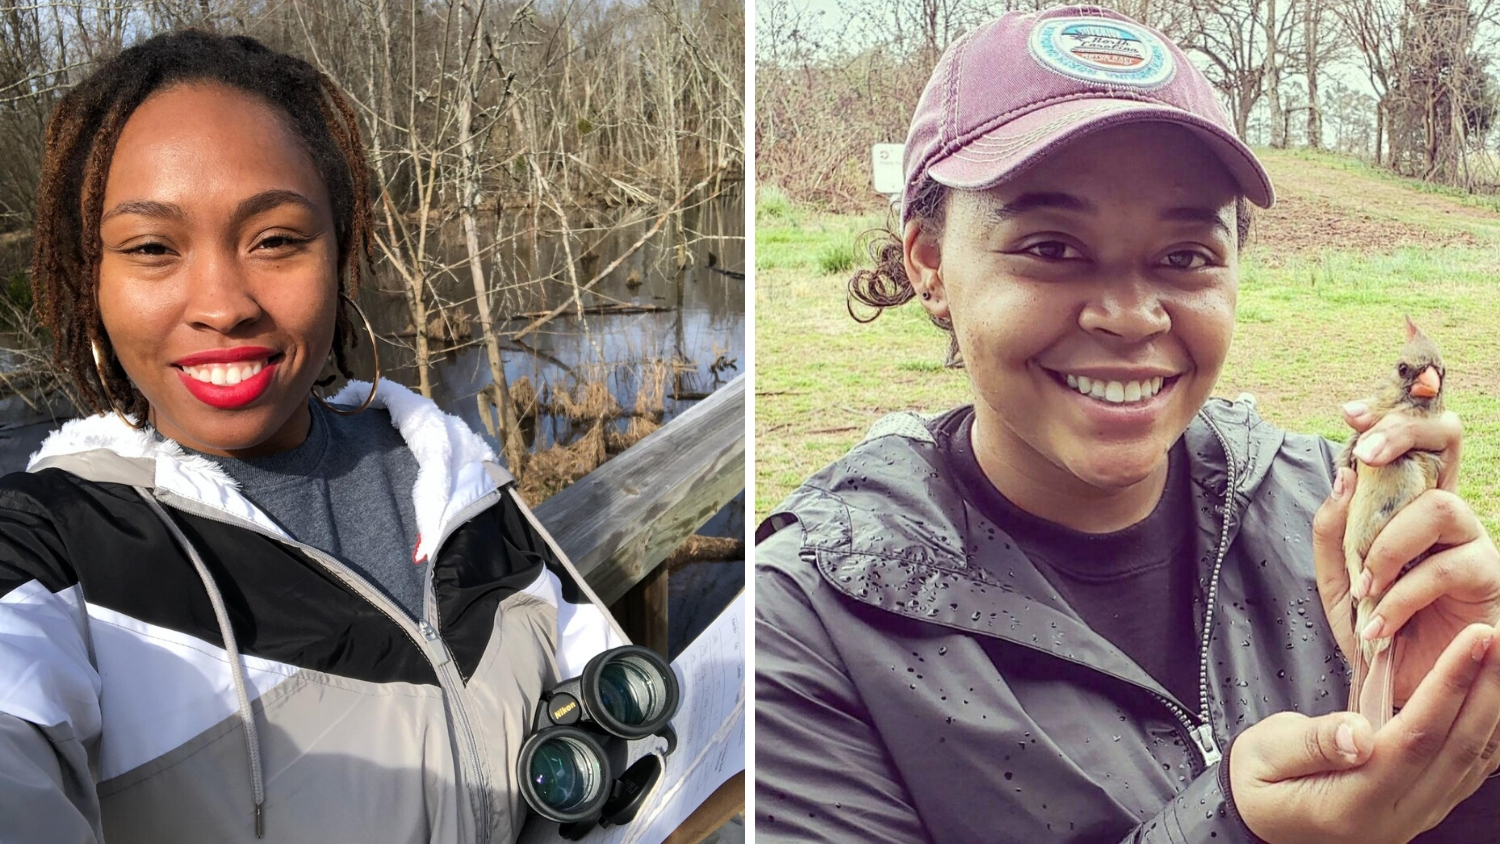 Deja Perkins and Lauren Pharr pictured while birding